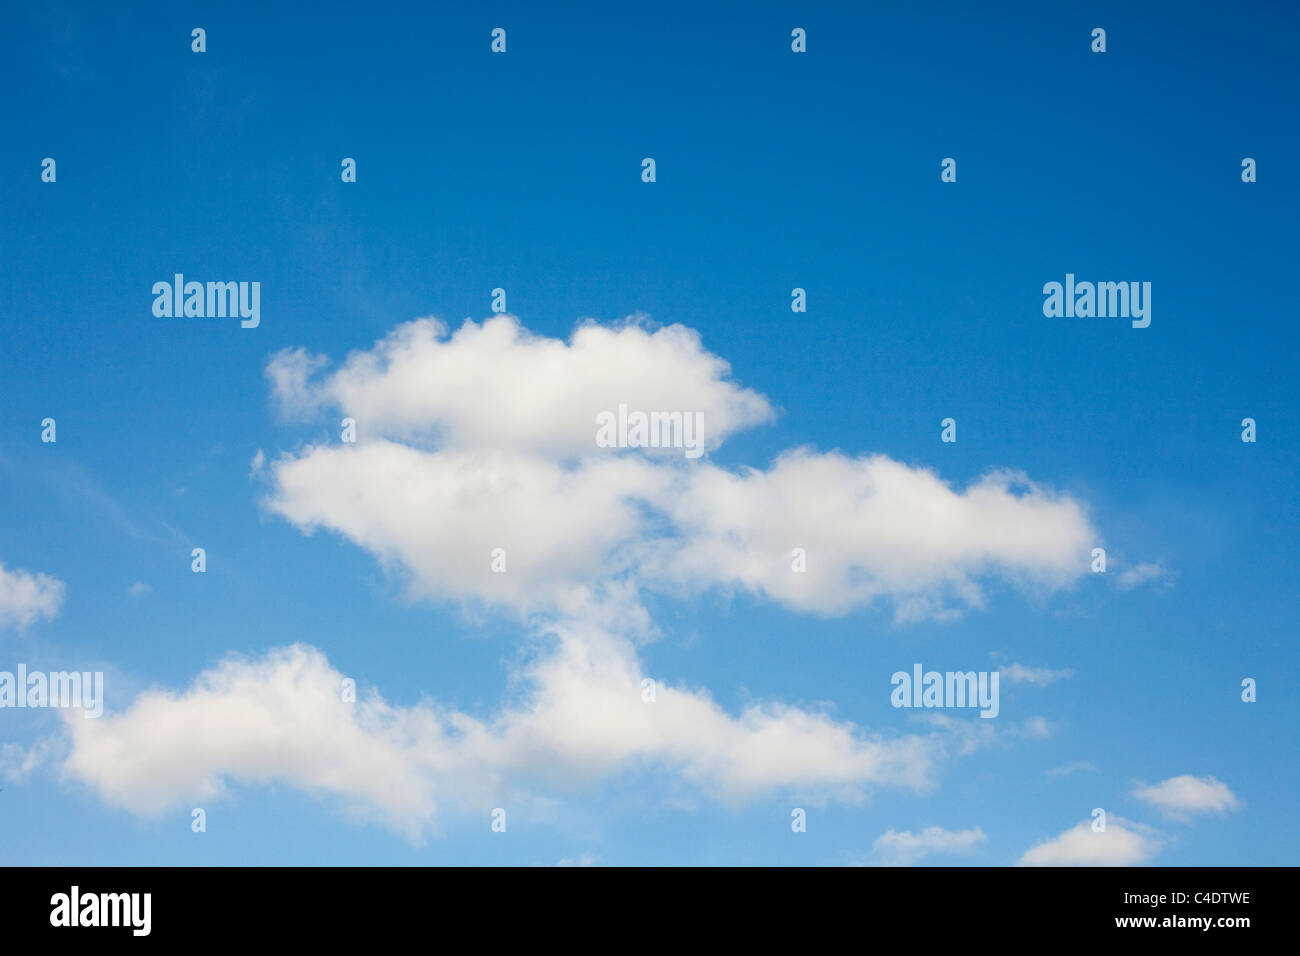 unusual cloud formation in a blue sky - Stock Image